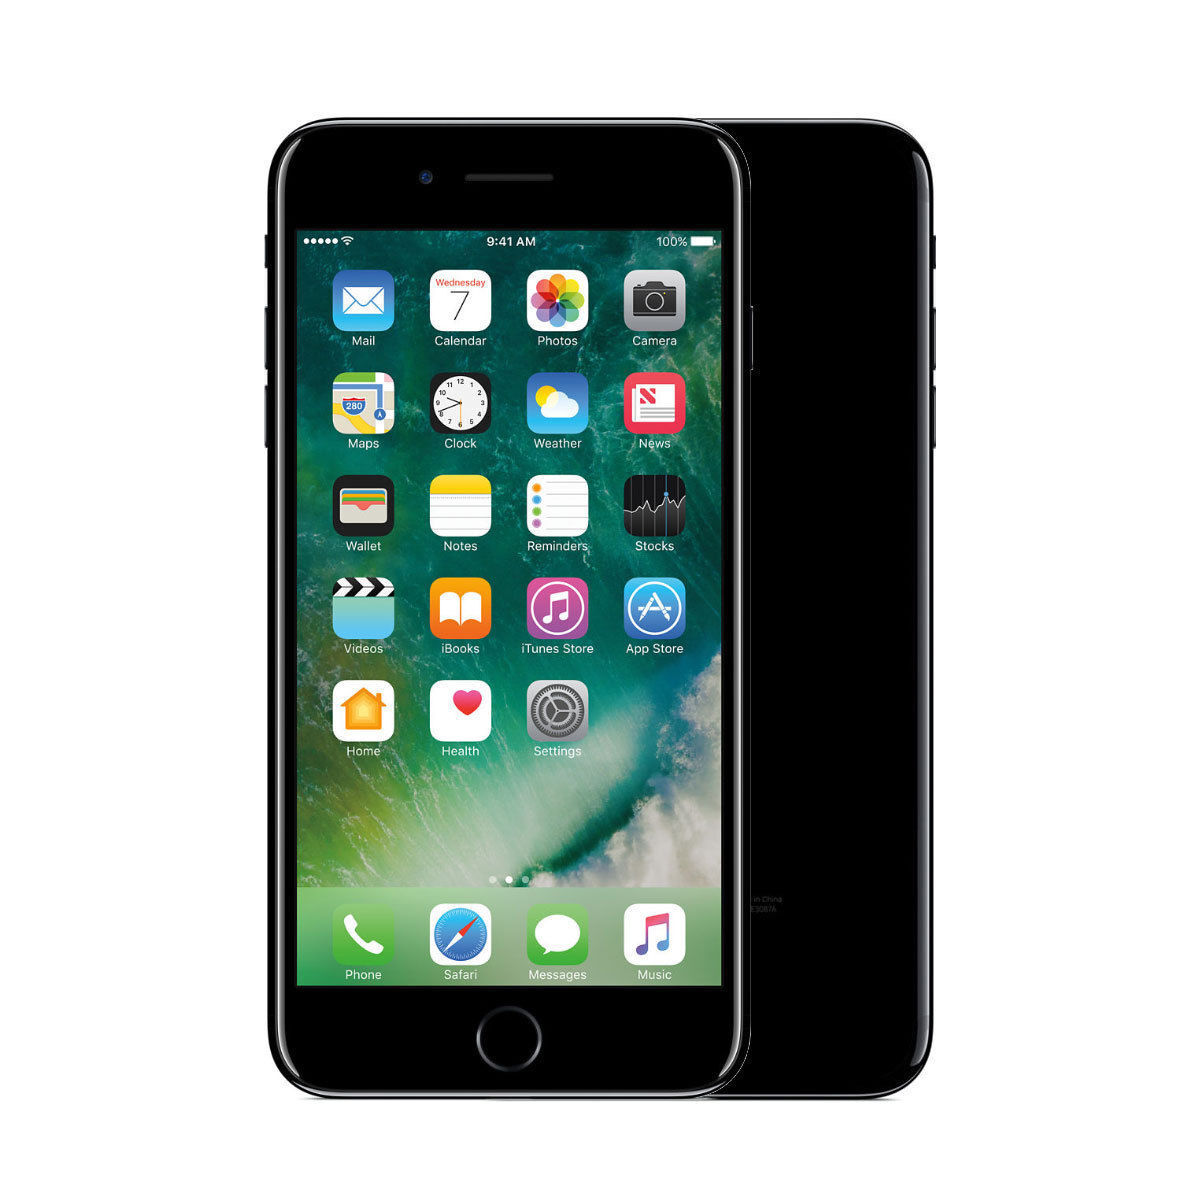 Apple iPhone7 | Choose Carrier: Verizon, Unlocked GSM, AT&T, T-Mobile or Sprint